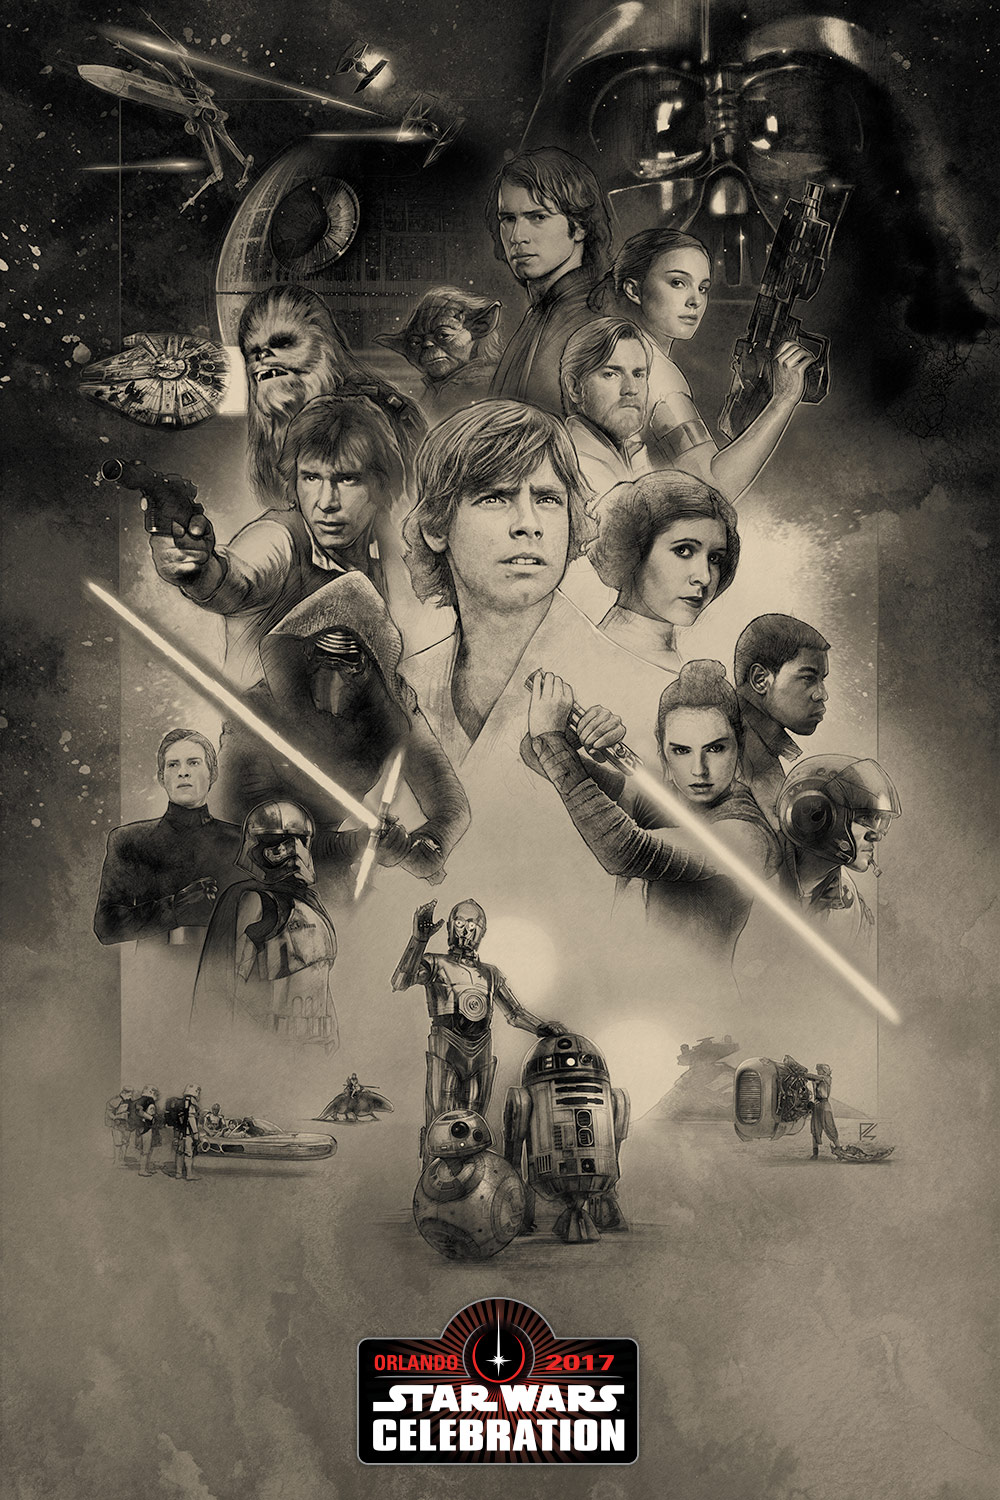 Star Wars Celebration Orlando 2017 Official Key Art Poster by Paul Shipper